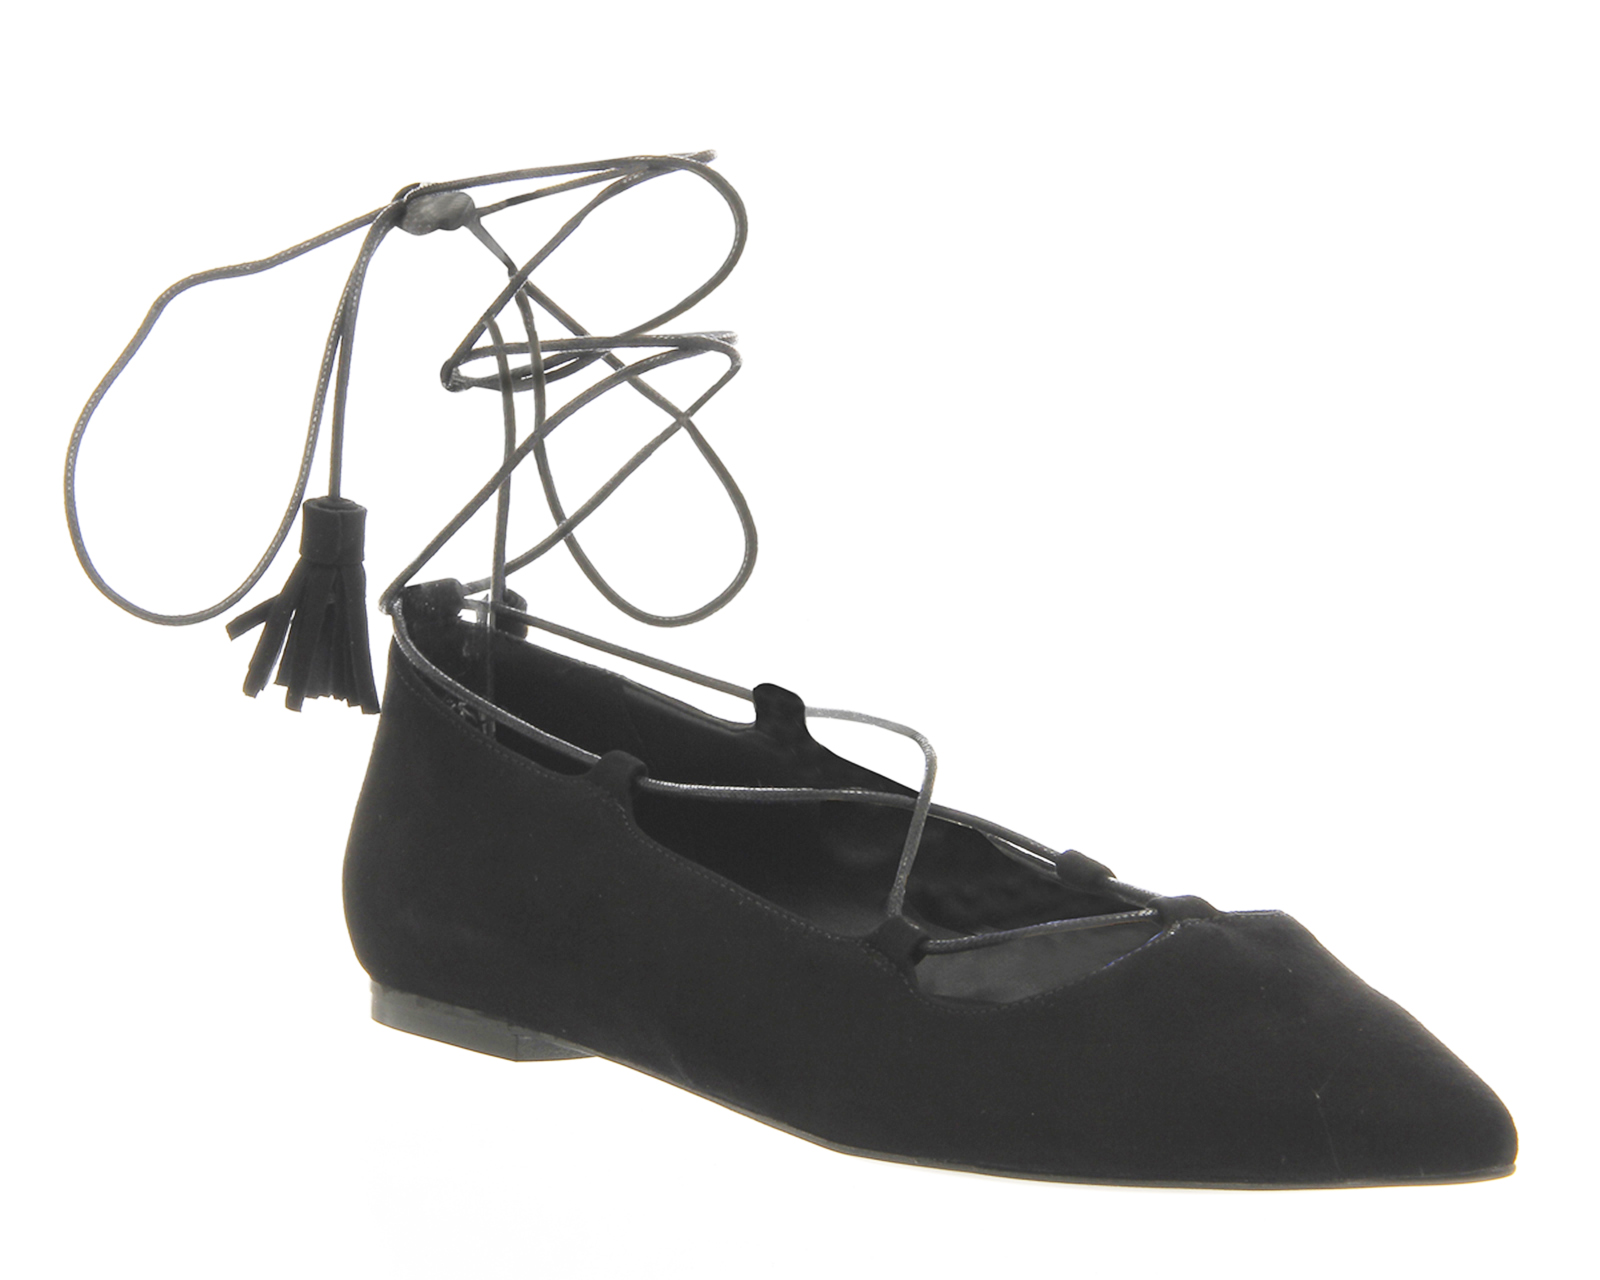 27998c19cf1 Sentinel Womens Office Black Suede Lace Up Flats Size UK 4  Ex-Display